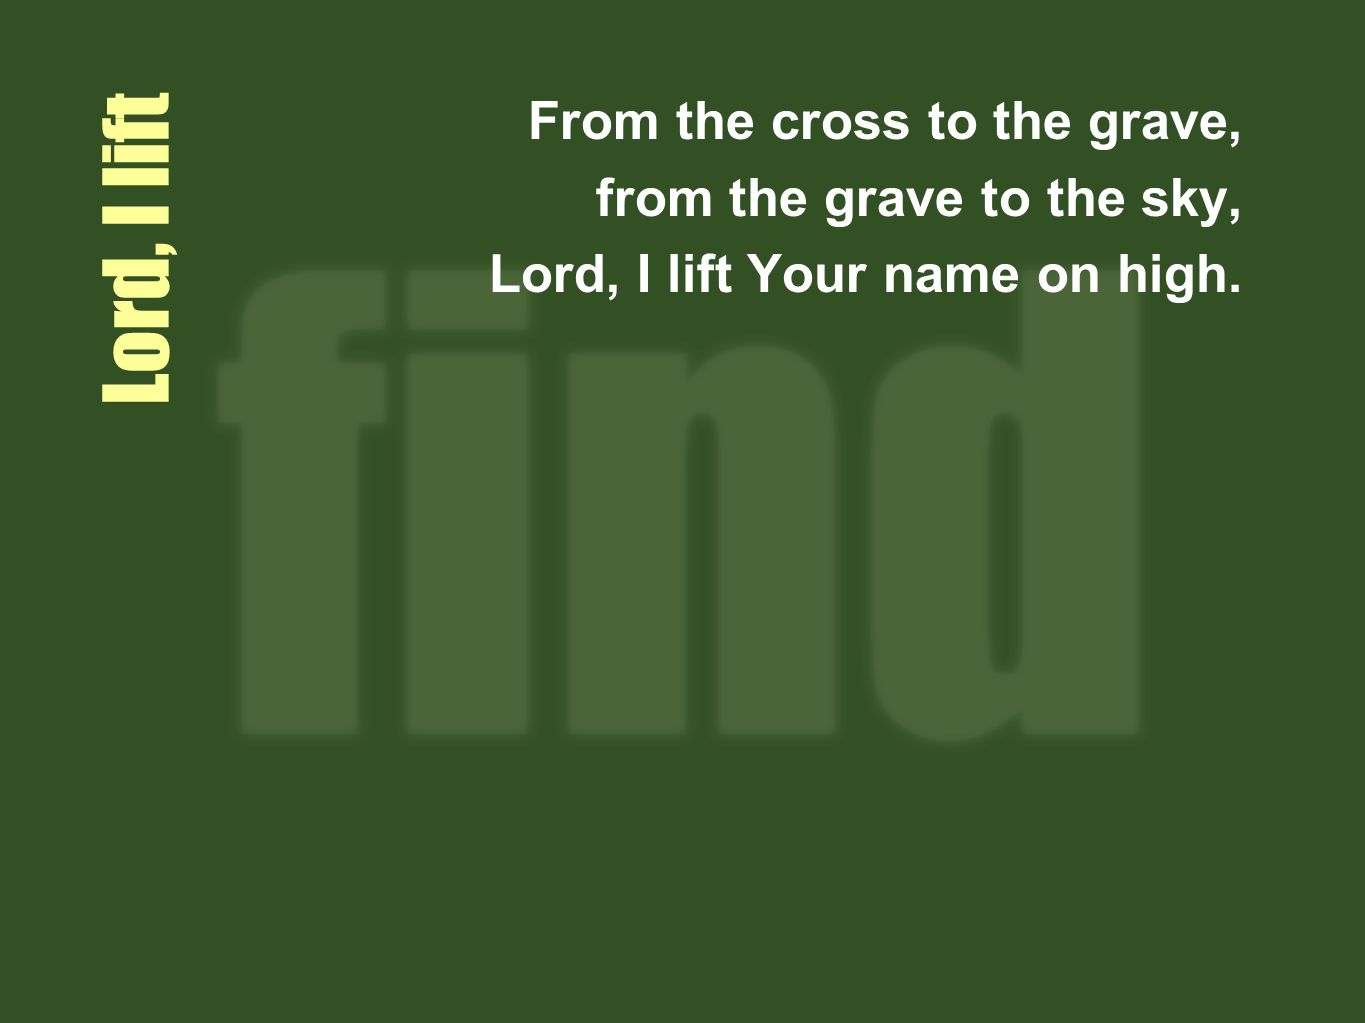 Lord I lift From the cross to the grave, from the grave to the sky, Lord, I lift Your name on high.